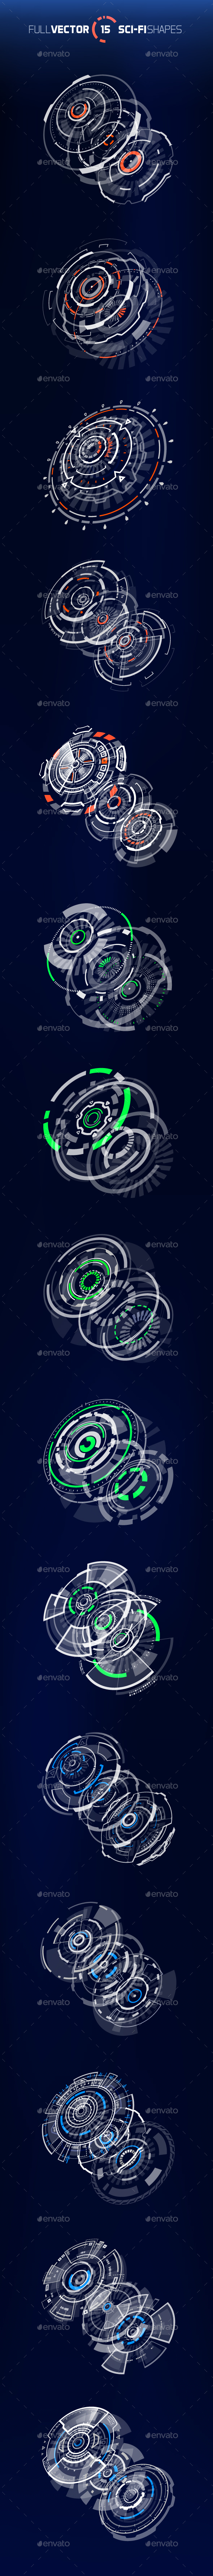 3D Sci-Fi Circle Shapes - Decorative Symbols Decorative